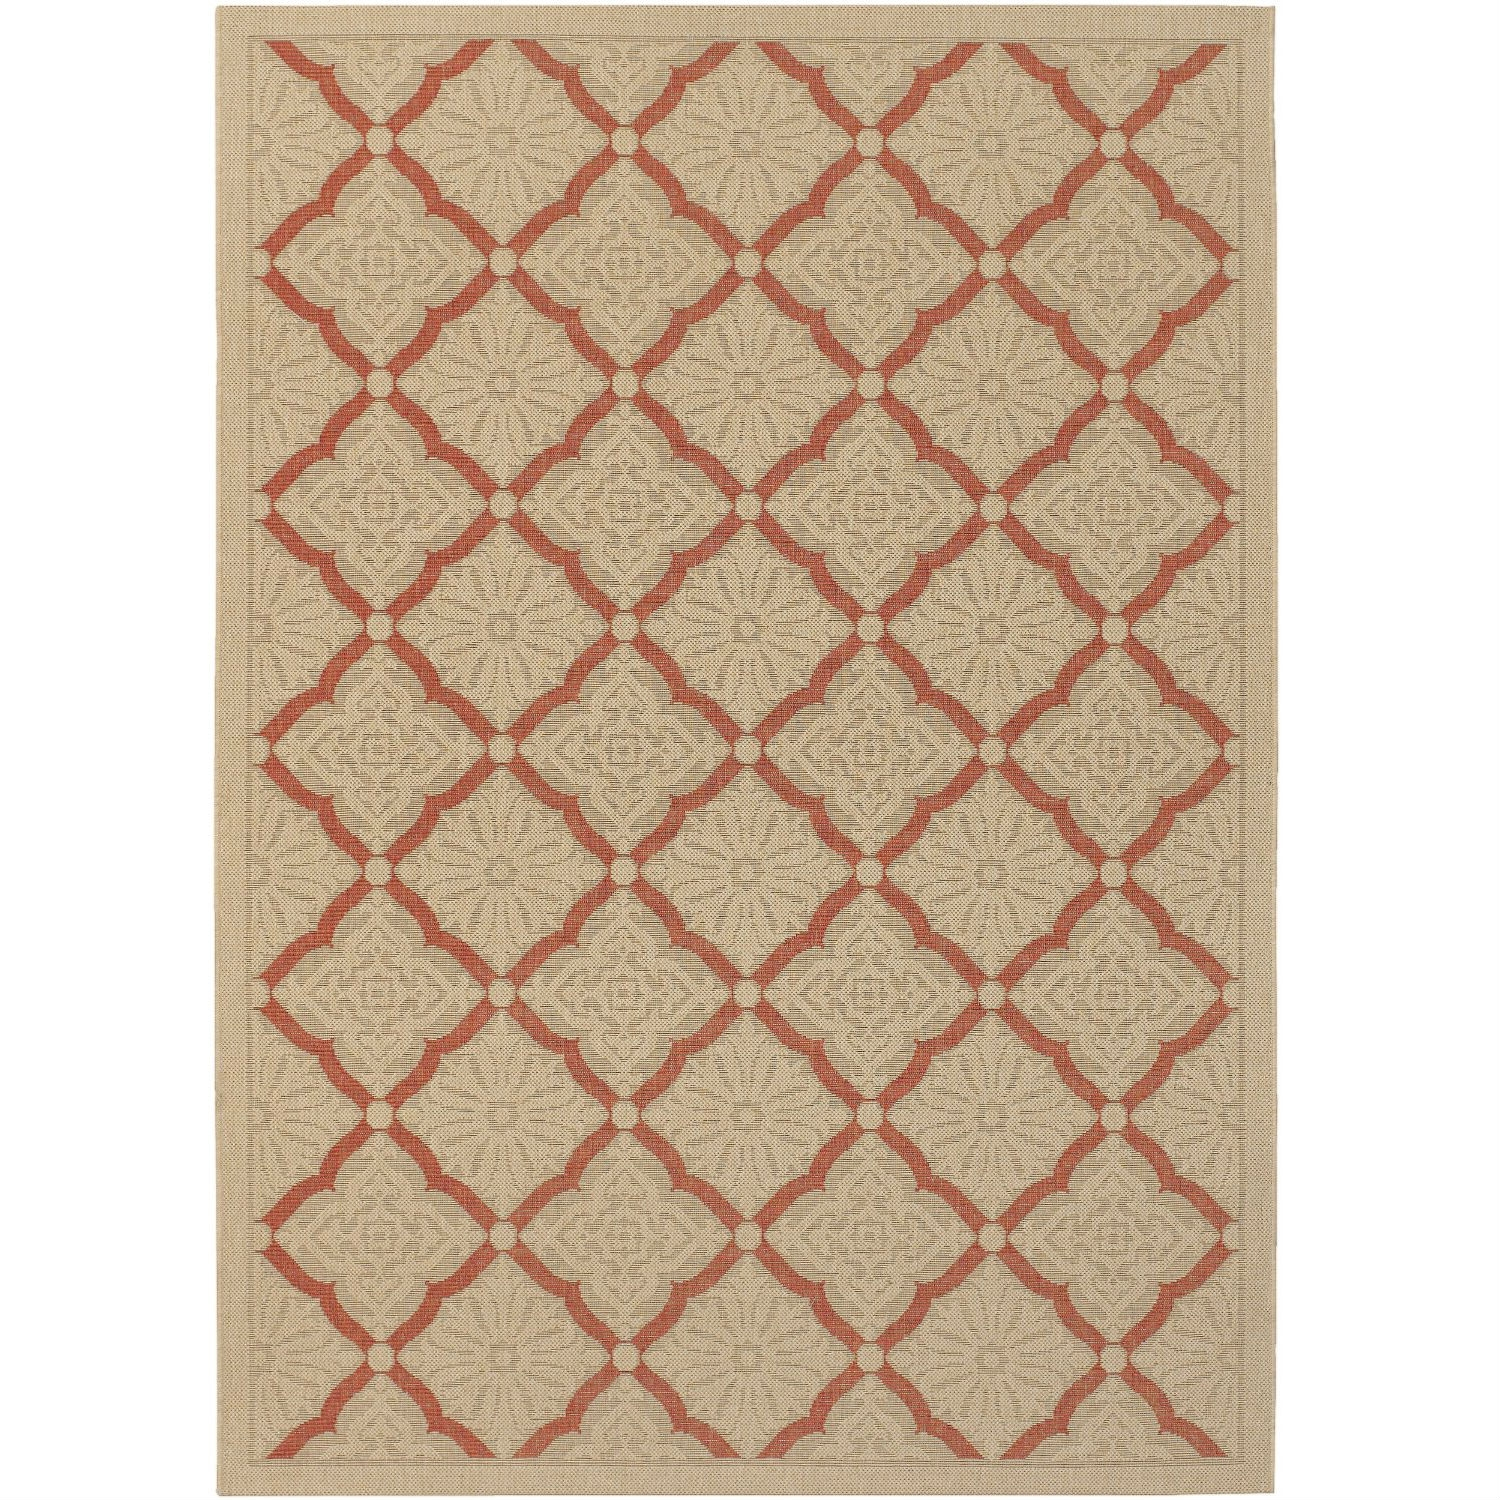 2' x 3'7 Terracotta and Cream Lattice Indoor Outdoor Area Rug, CFS204513 :  Varying motifs, ranging from graphic stripes to patterned shapes, take center stage in this 2' x 3'7 Terracotta and Cream Lattice Indoor Outdoor Area Rug. Taking its cue from the surrounding environment, this power-loomed collection can be used to create tranquil retreats for the home. Made in Turkey, Five Seasons' structured, flatwoven construction allows its versatile style to complement both outdoor and indoor settings. Power-loomed of 100-percent polypropylene, each of the dynamic patterns offer a highly durable pile that affords superior comfort and fuss-free maintenance. Designed specifically to withstand outdoor elements, this is mold and mildew resistant, as well as UV stabilized to ensure each color, from cool to warm tones, retains their vibrancy even after months of exposure to the sun and other weather conditions. Replicating nature's eclectic mix of inspiring colors and forms, this provides an infinite range of style options wherever it is showcased, from casual to transitional indoor living areas and outdoor spaces in need of some spicing up. 100-percent recyclable.